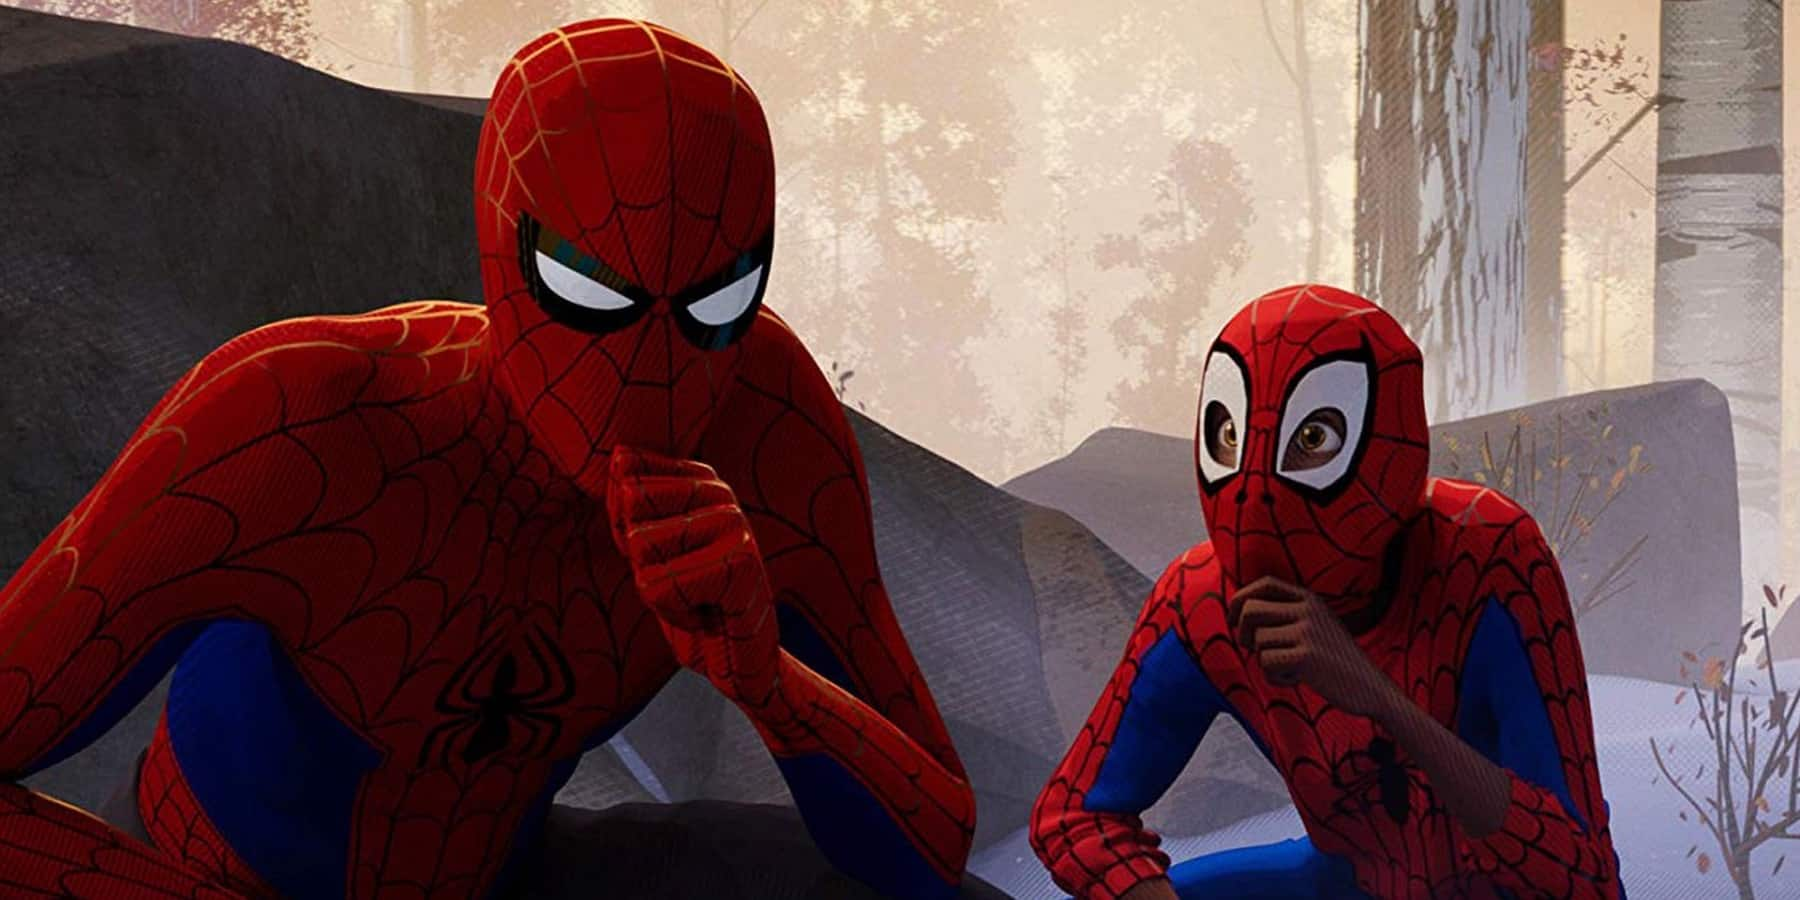 Tom Holland's Spider-Man Venom 2 Into the Spider-Verse Miles Peter B. Parker thinking